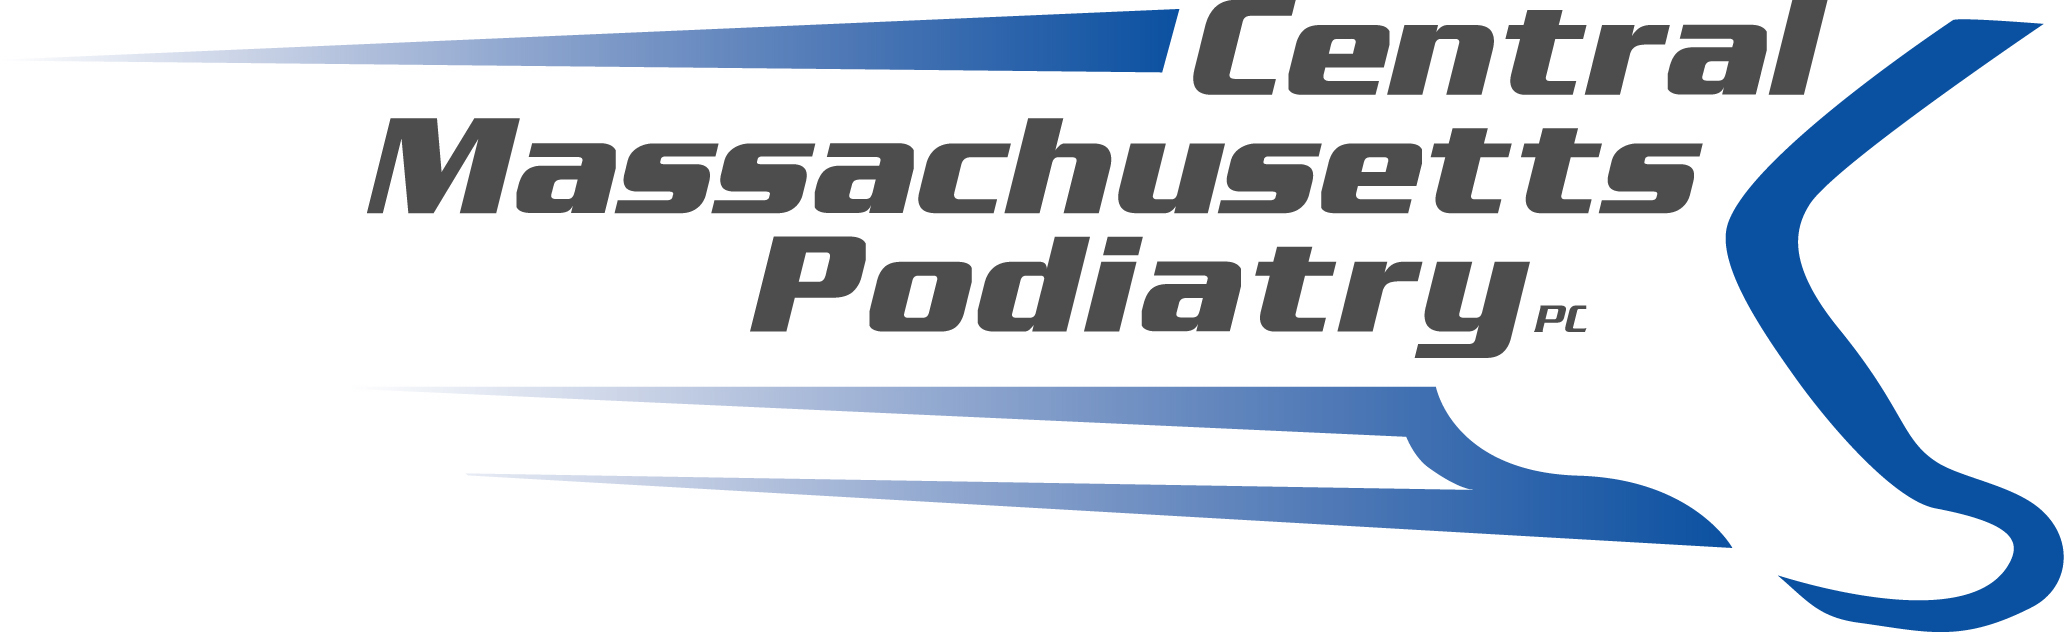 Sponsor Central Massachusetts Podiatry